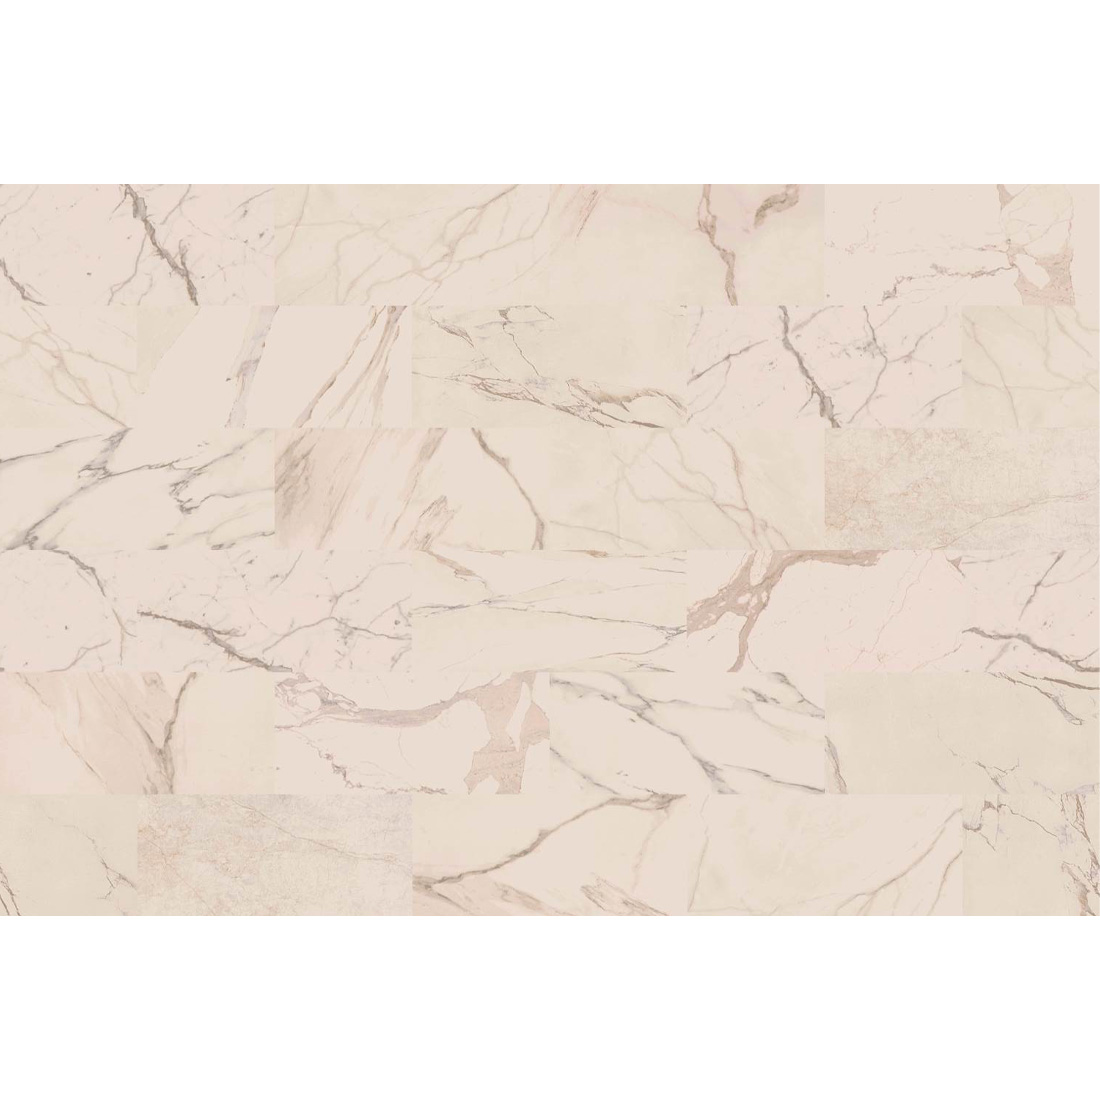 Vloerkleed Desso Sense of Marble 1269